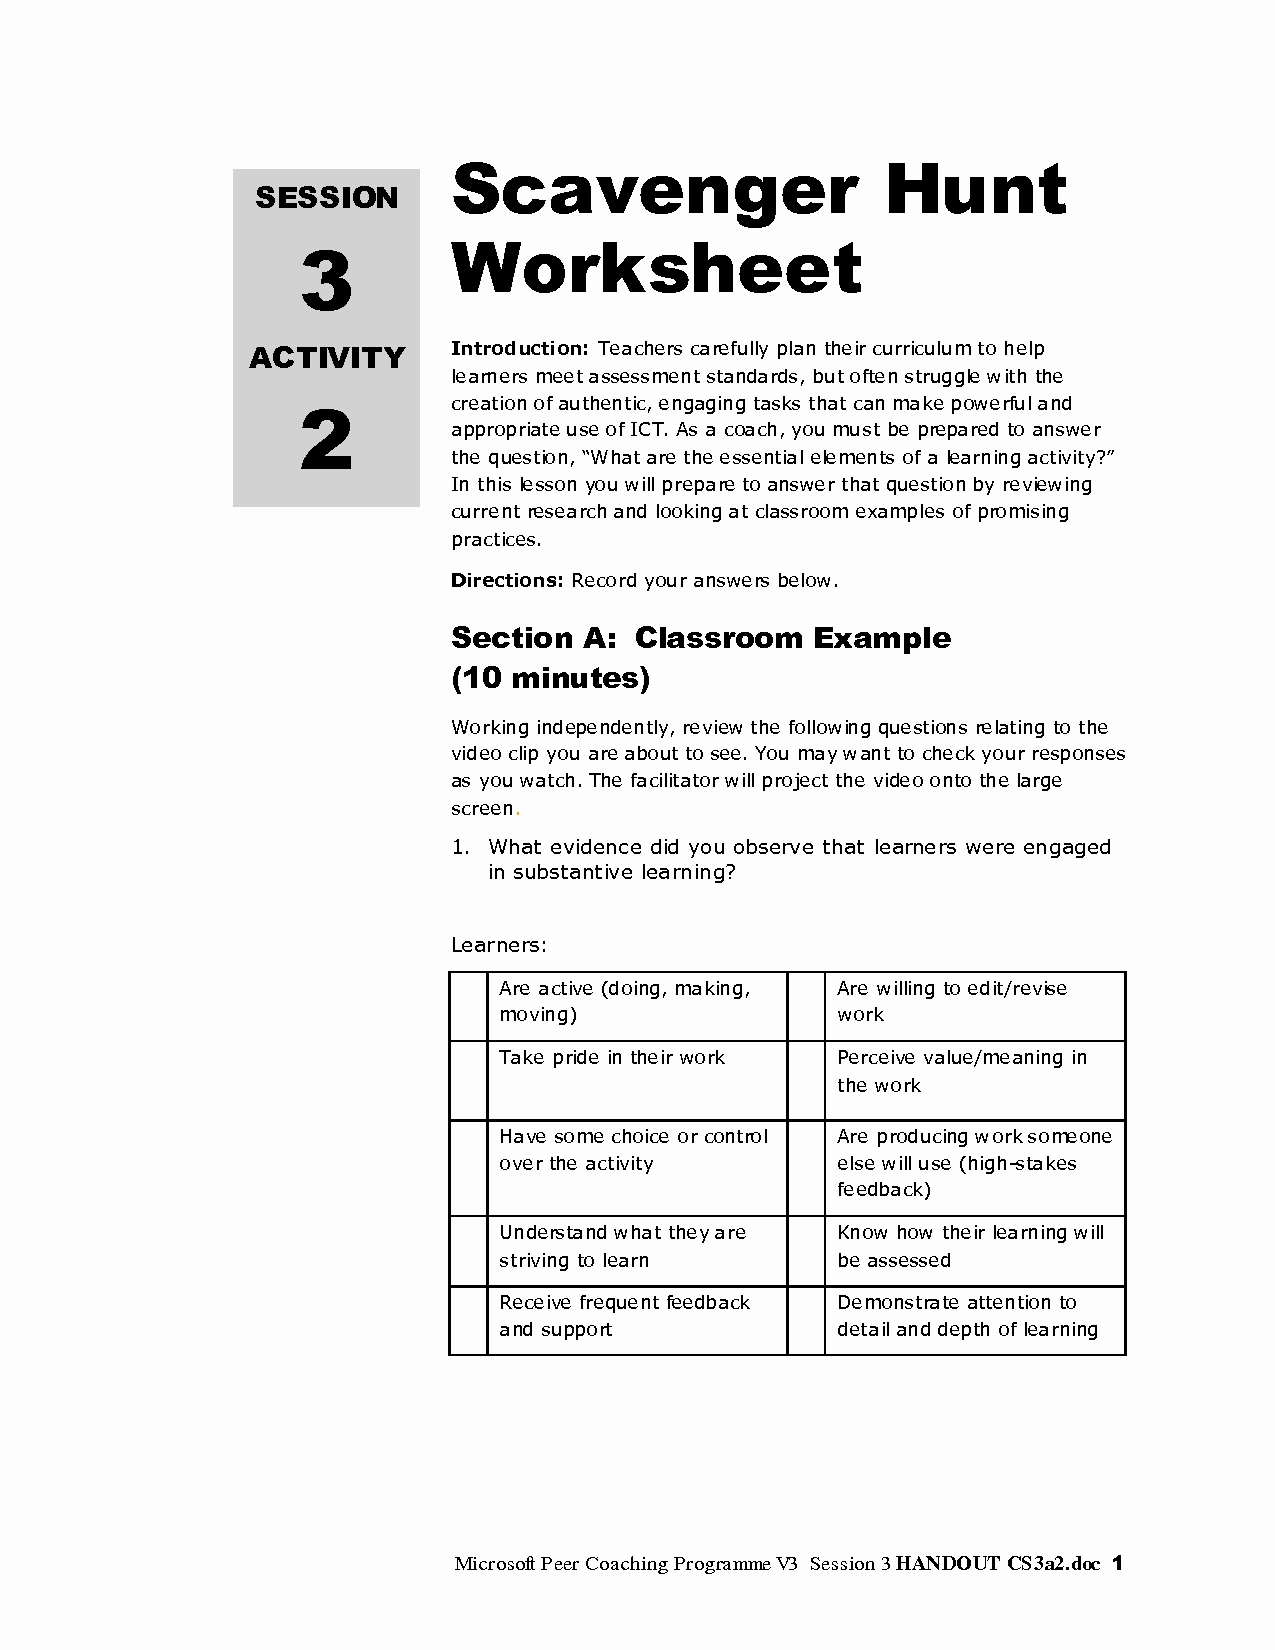 Constitution Scavenger Hunt Worksheet Elegant 14 Best Of Constitution Scavenger Hunt Worksheet